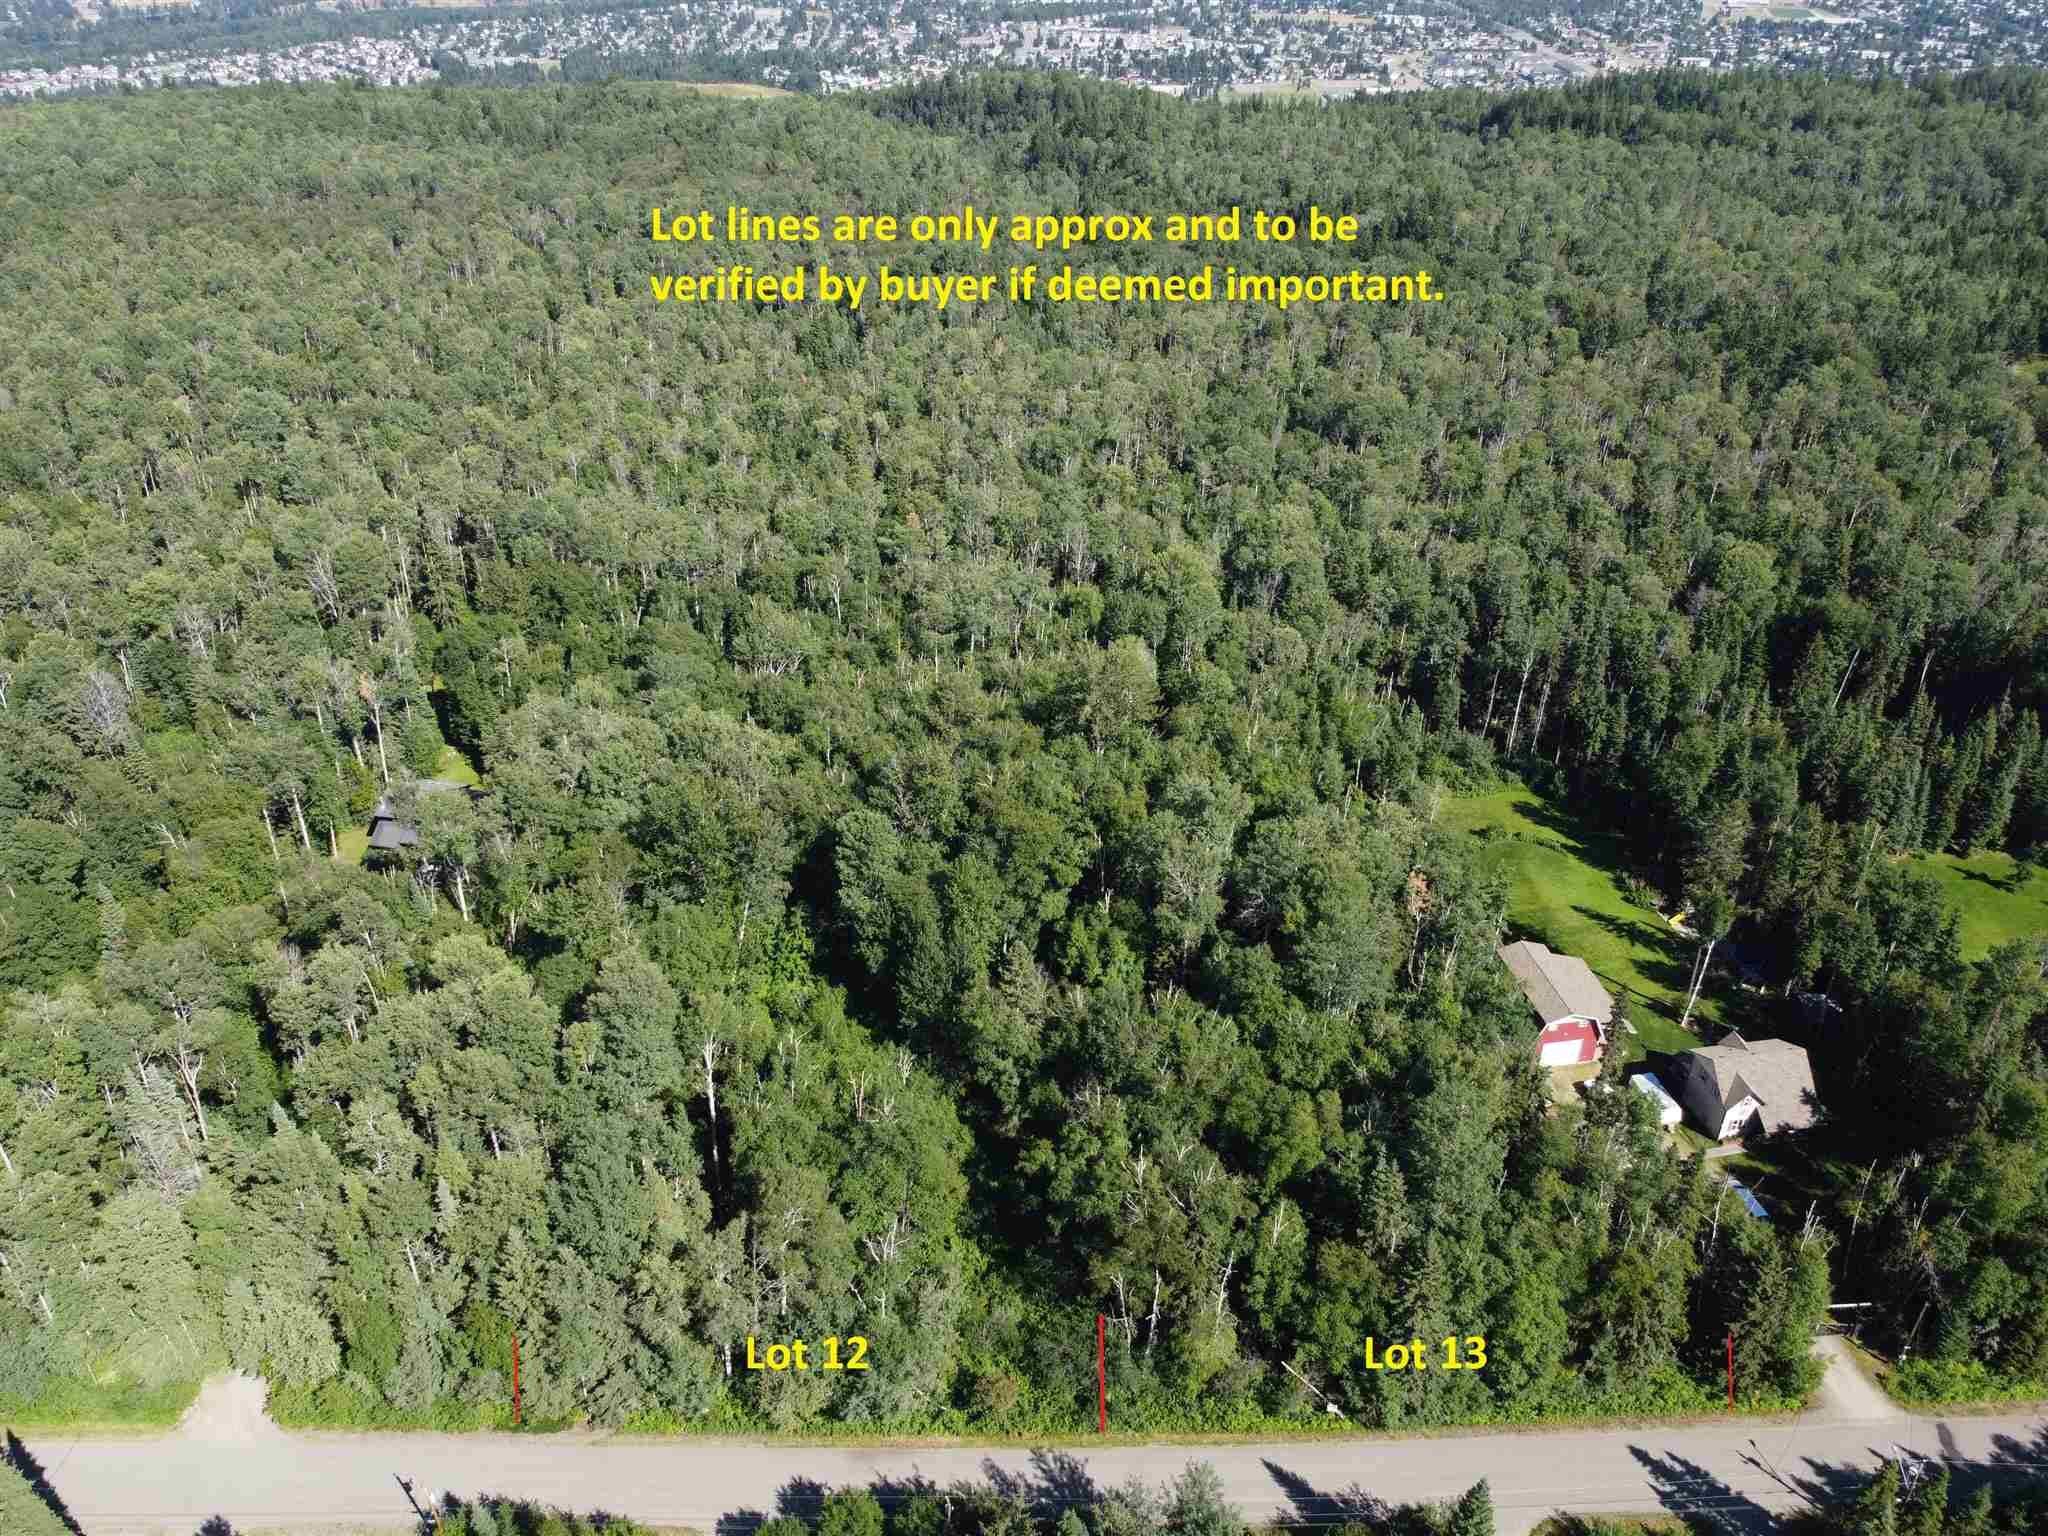 """Main Photo: 6370 CRANBROOK HILL Road in Prince George: Cranbrook Hill Land for sale in """"CRANBROOK HILL"""" (PG City West (Zone 71))  : MLS®# R2607372"""